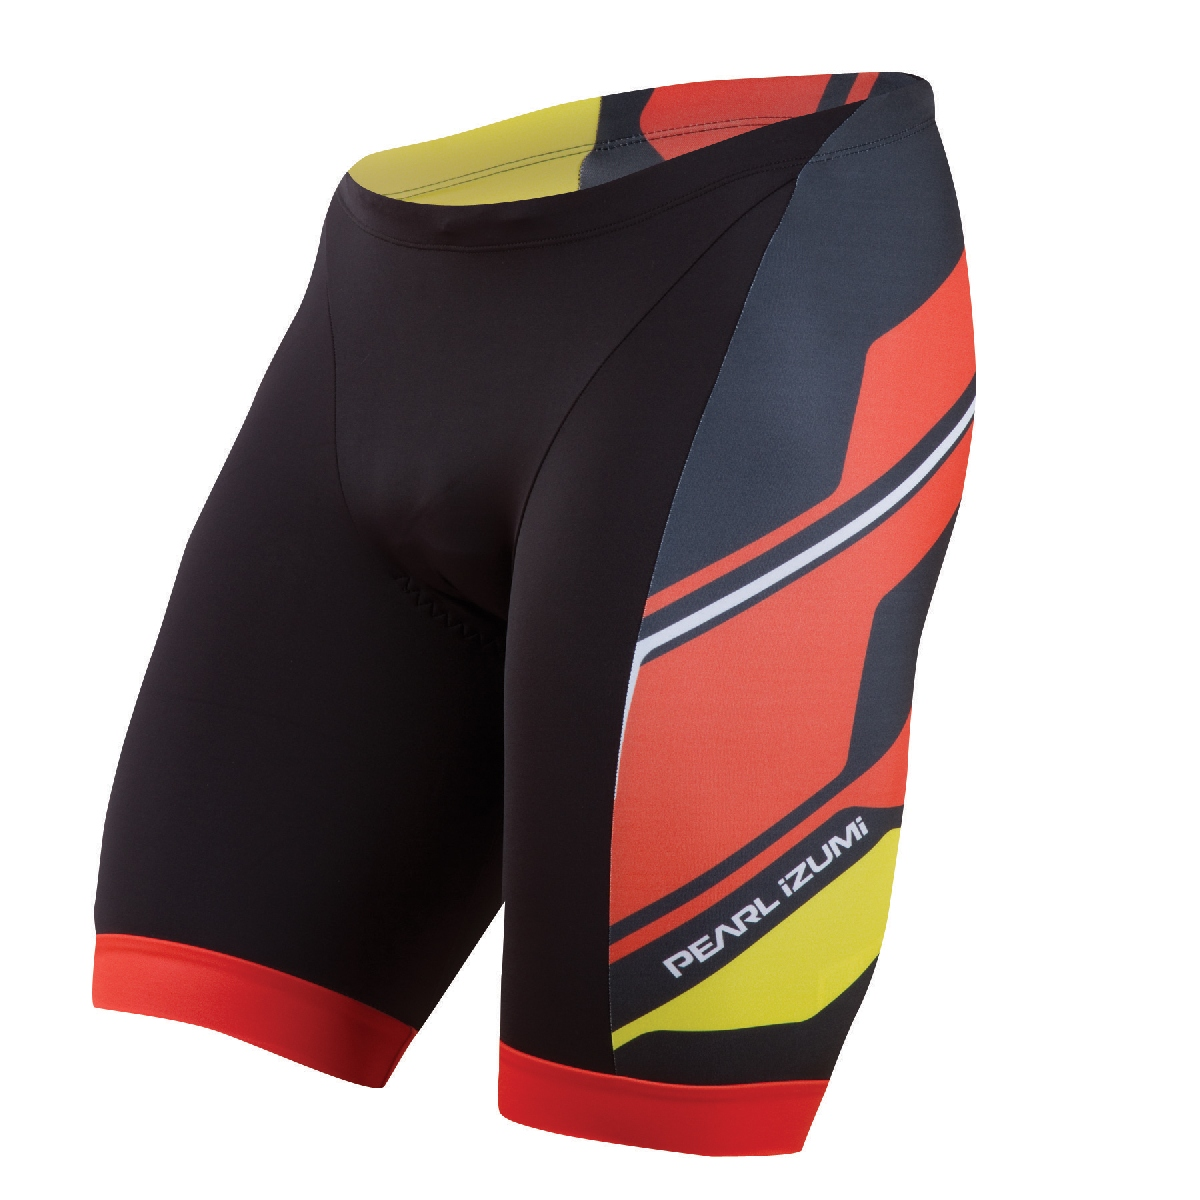 Pearl Izumi Elite In R Cool LTD Triathlon Short Men's Size XL InsertMandarinRed U.S.A. & Canada